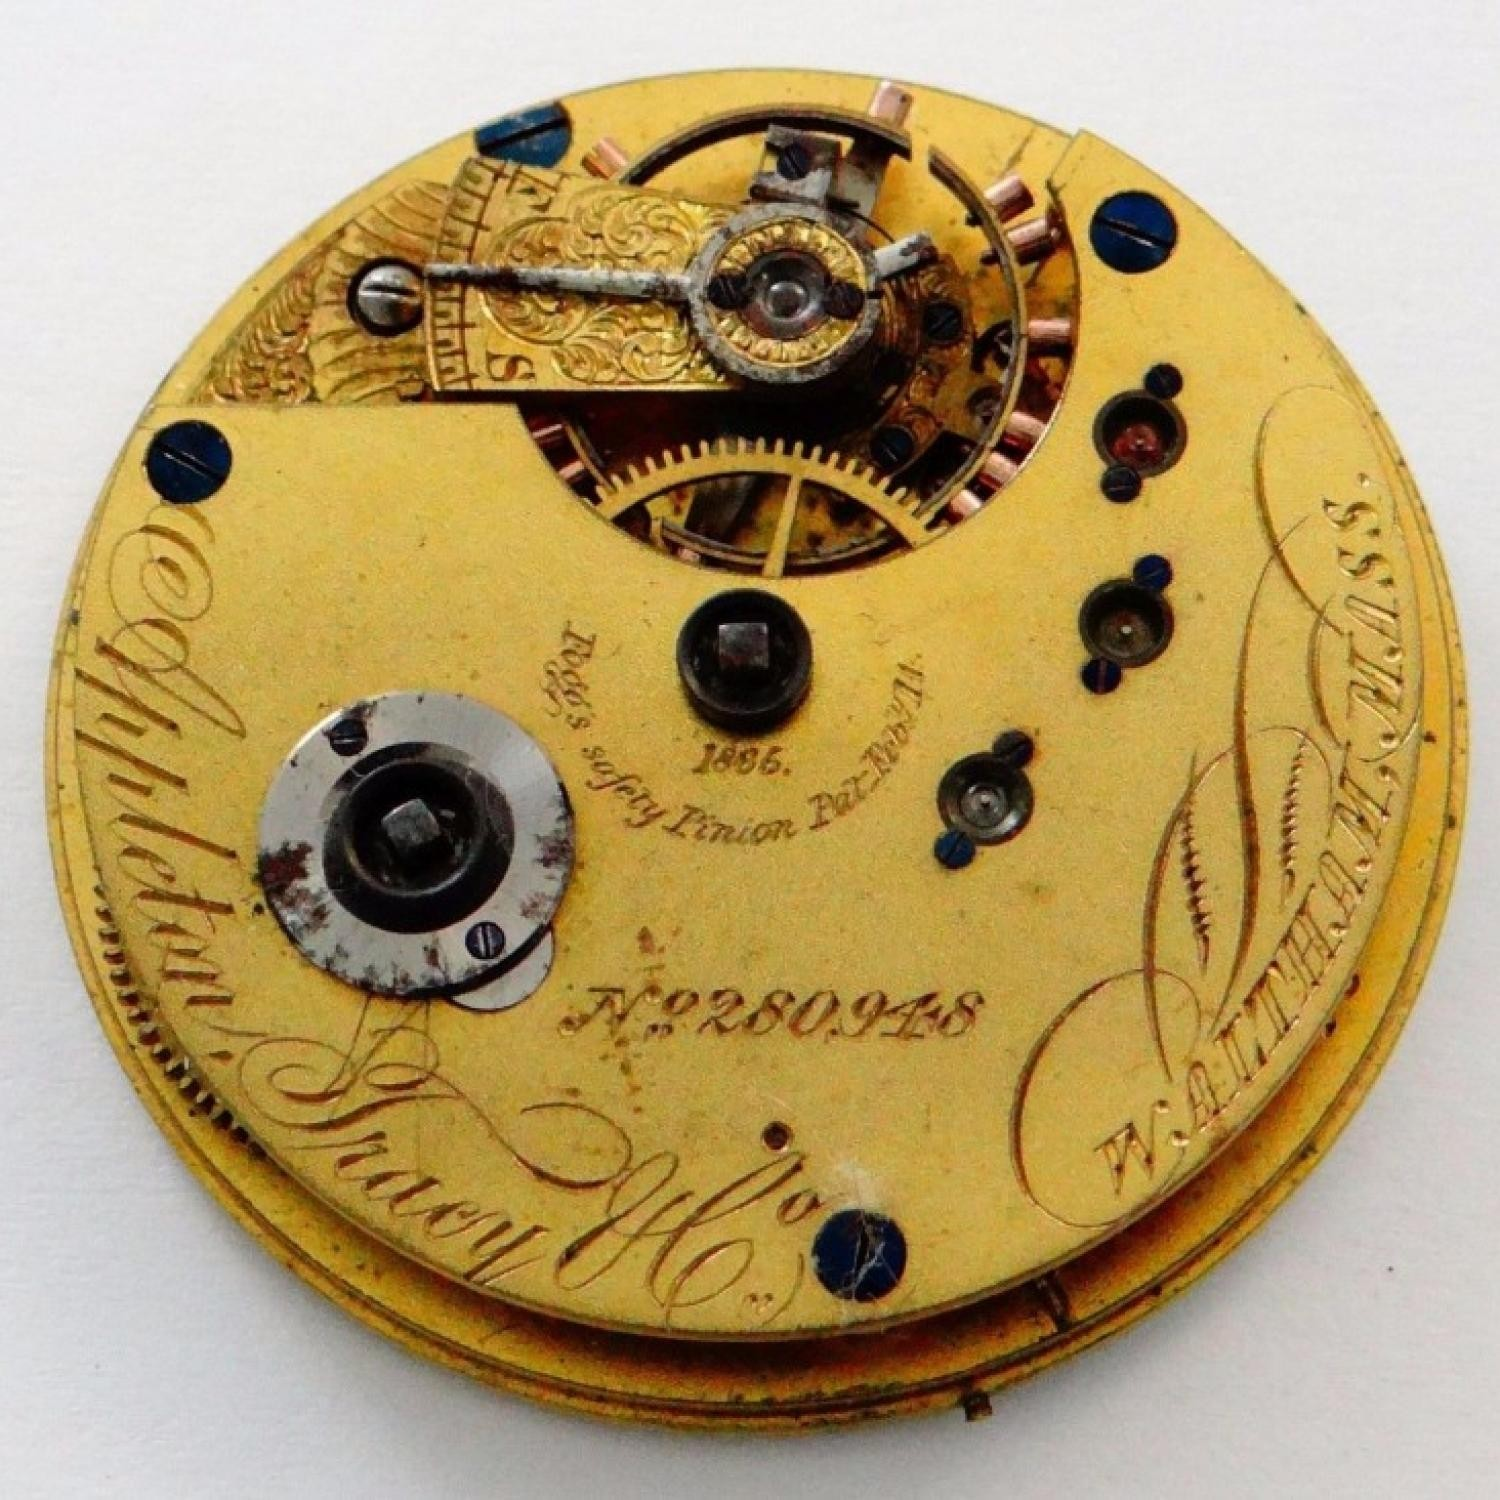 Image of Waltham A.T. & Co. #280948 Movement